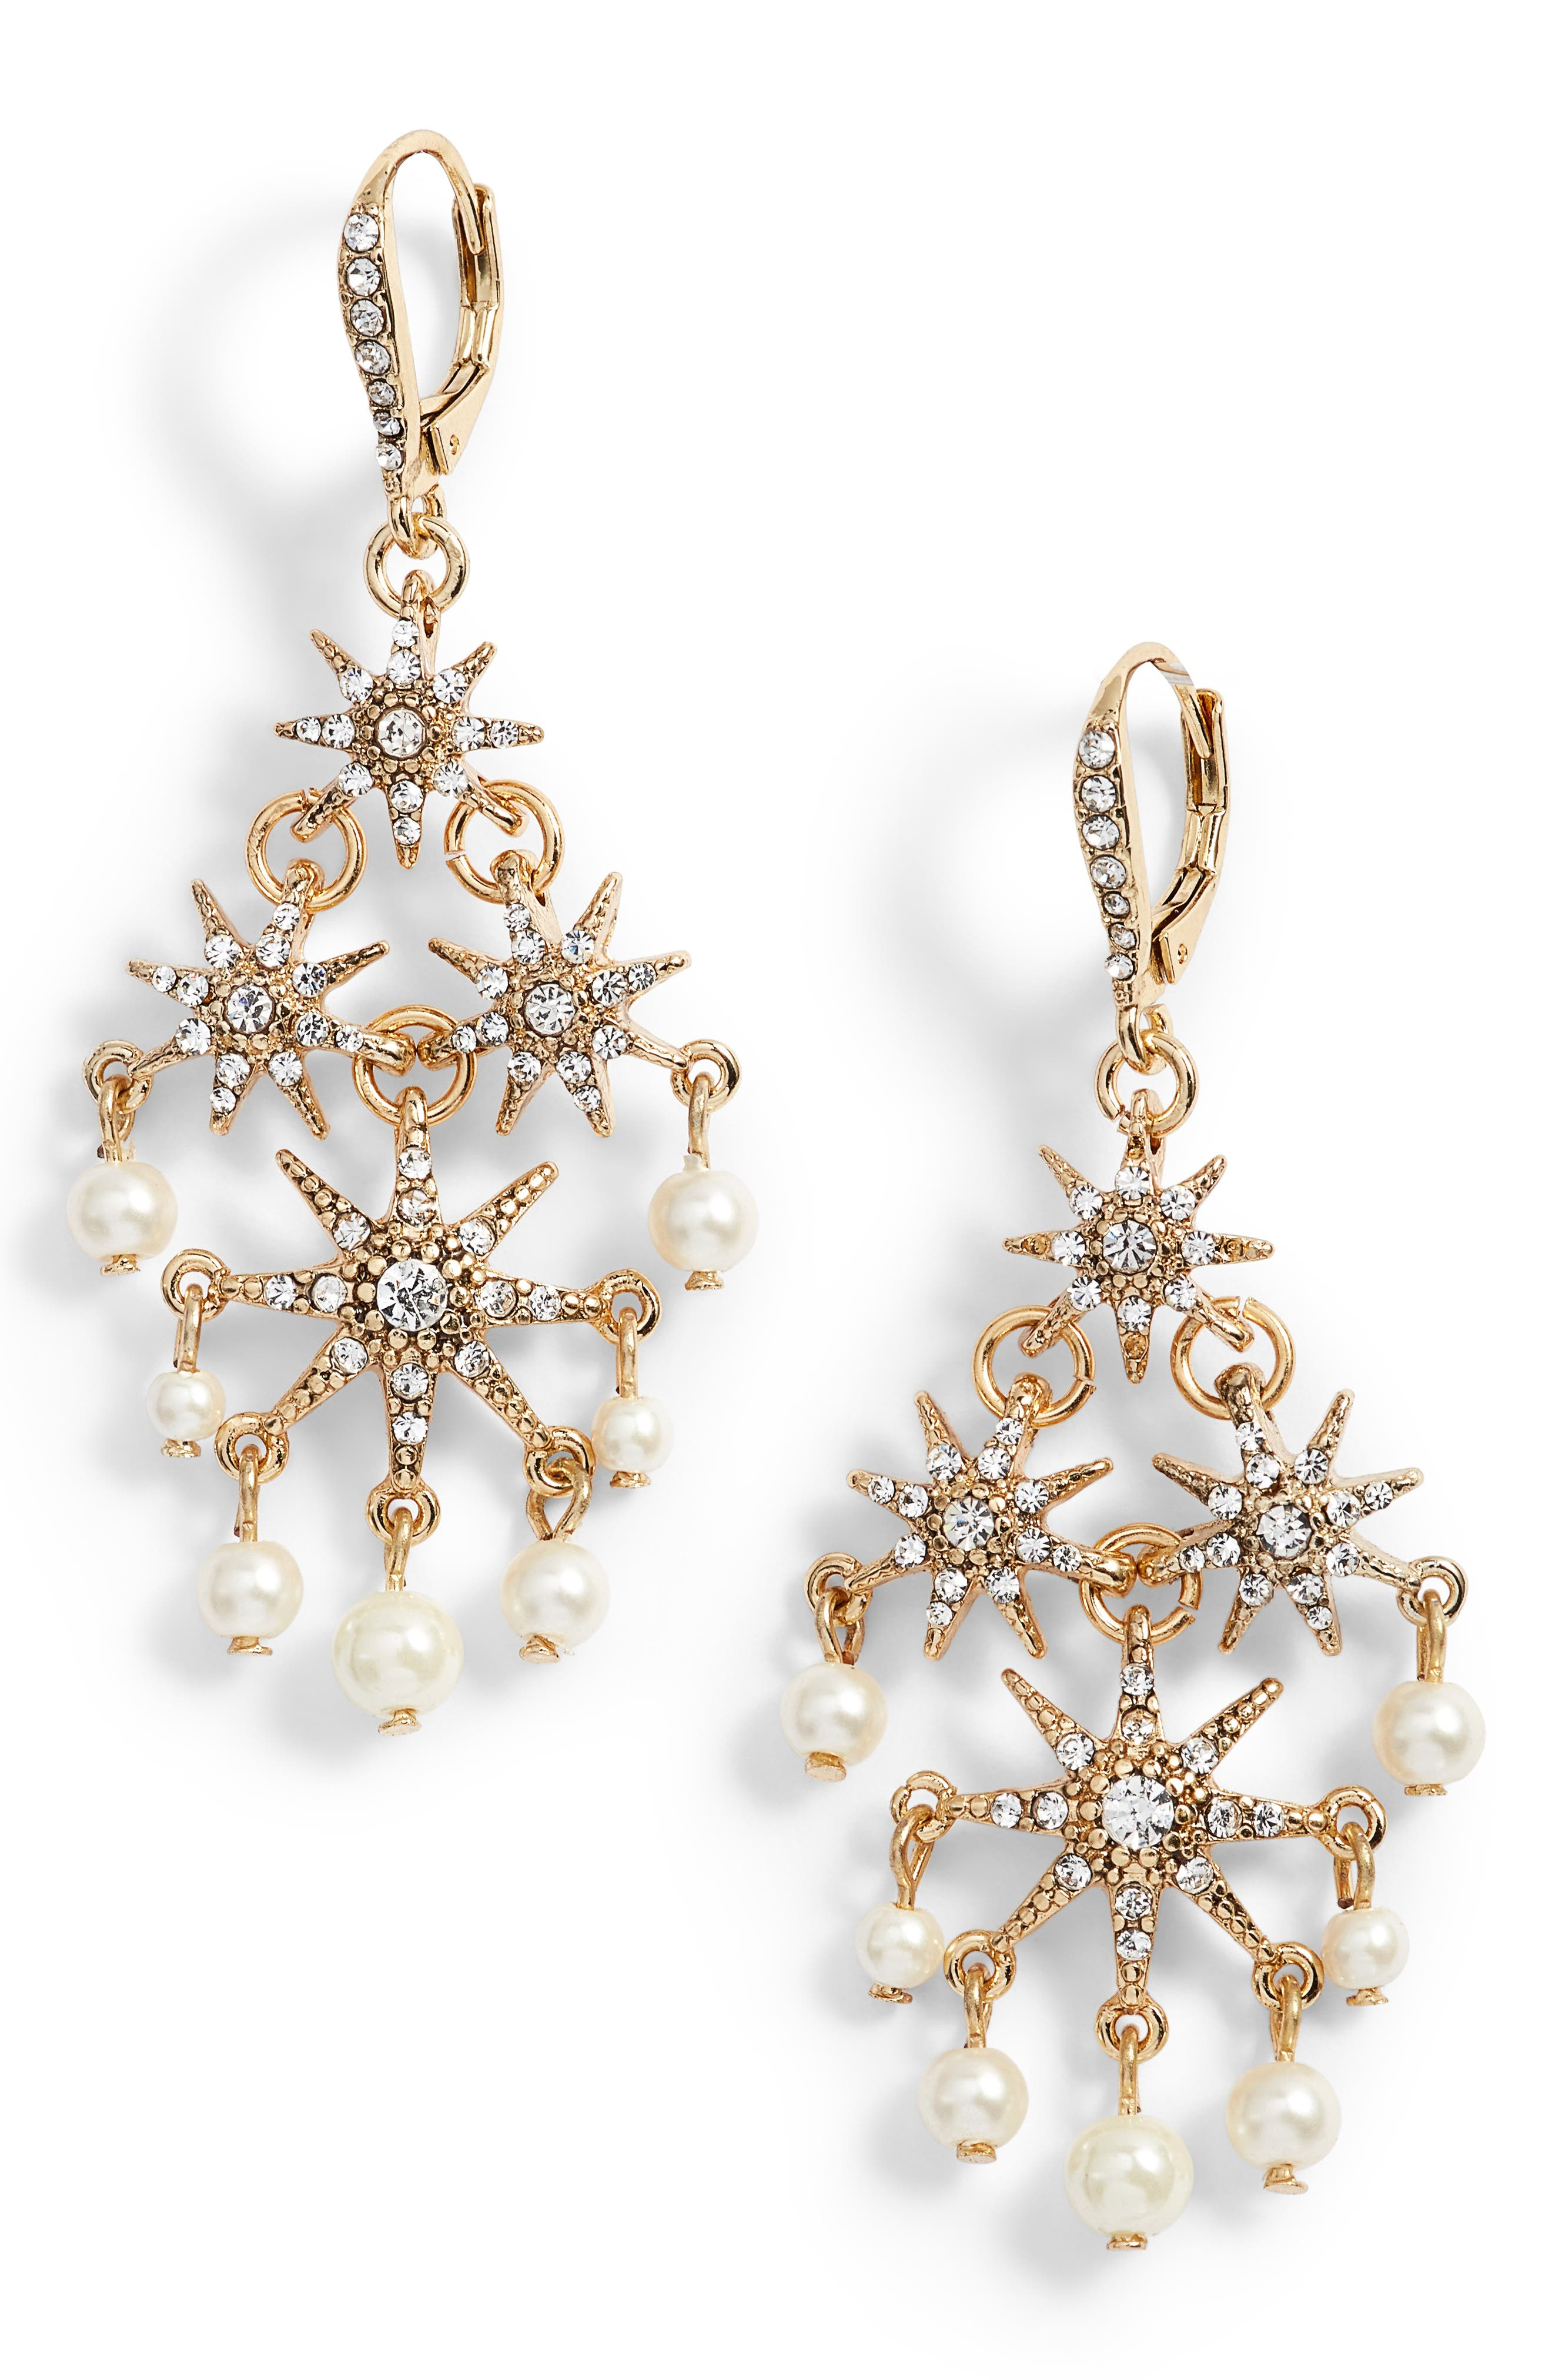 Star Chandelier Drop Earrings,                             Main thumbnail 1, color,                             Gold/ Cry/ Pearl